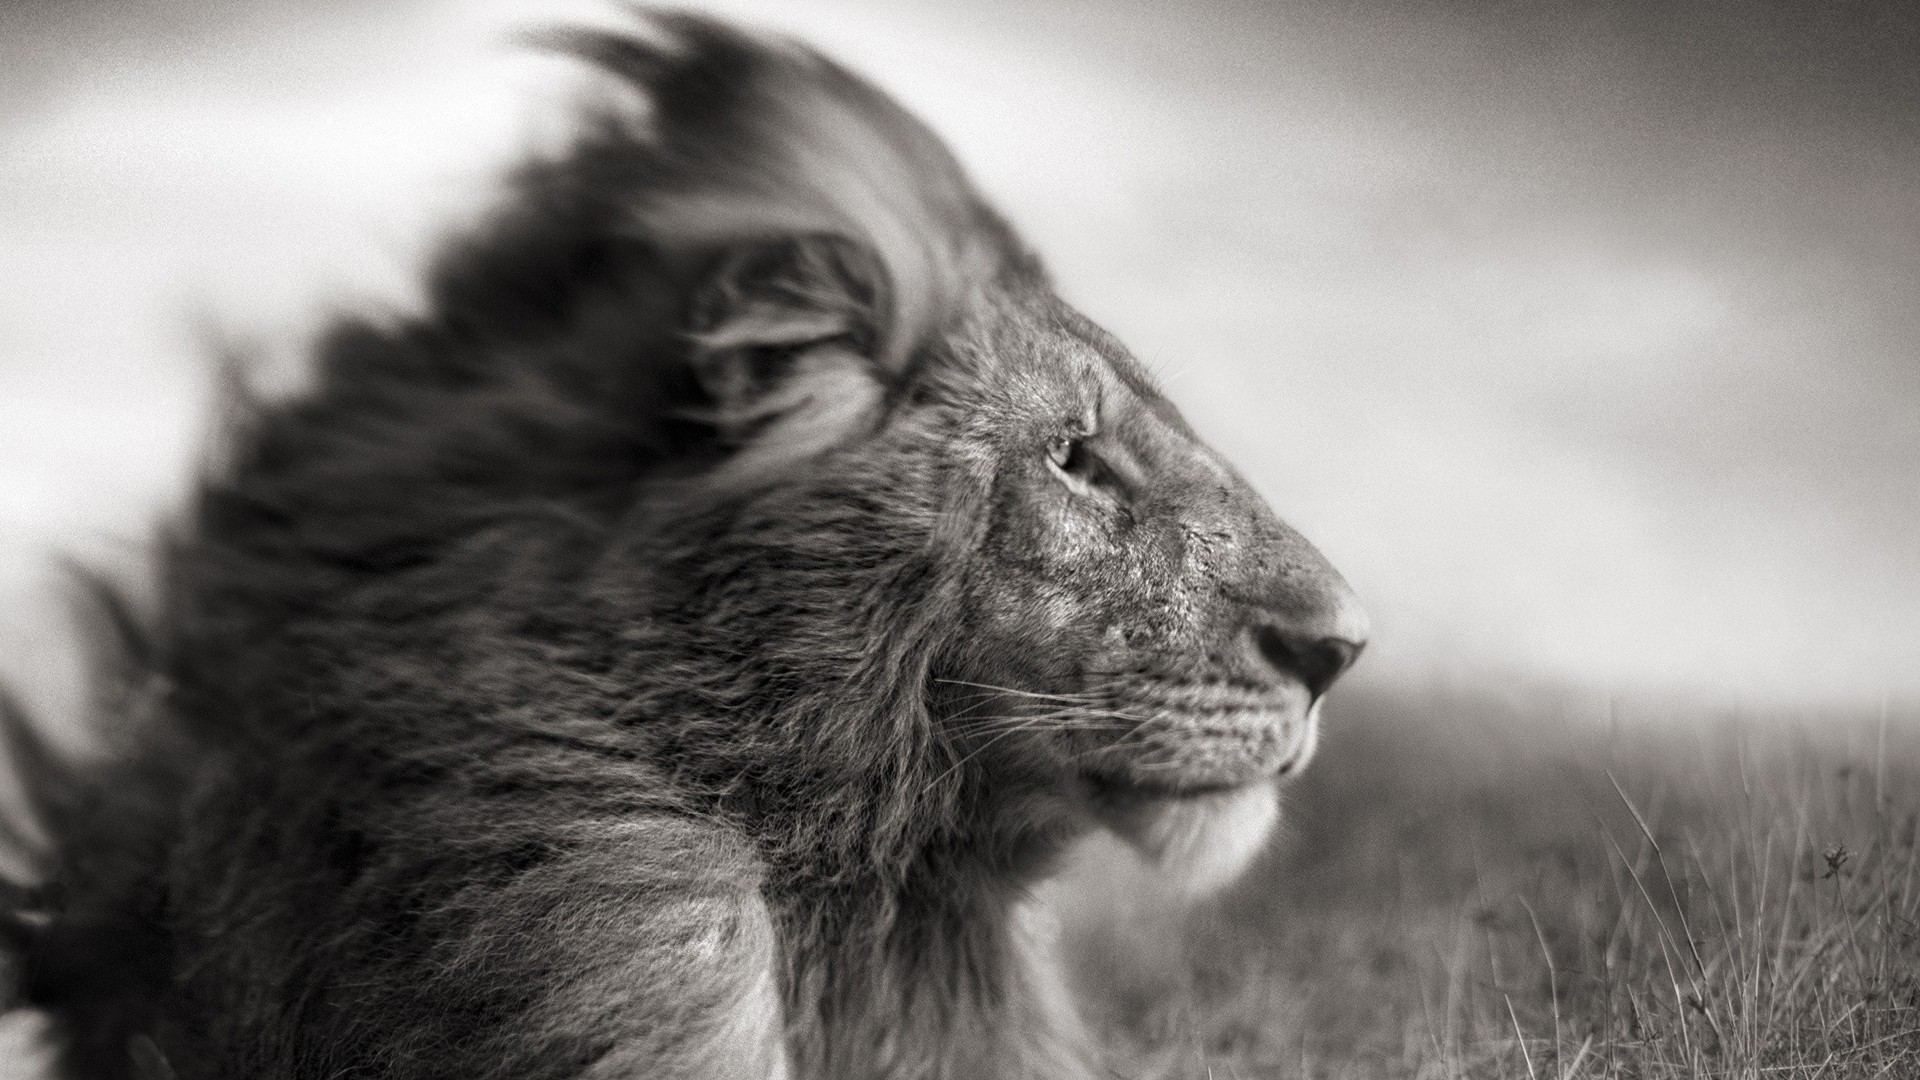 Angry Lion Wallpaper Hd 1080p Black And White Lion Wallpaper 51 Images